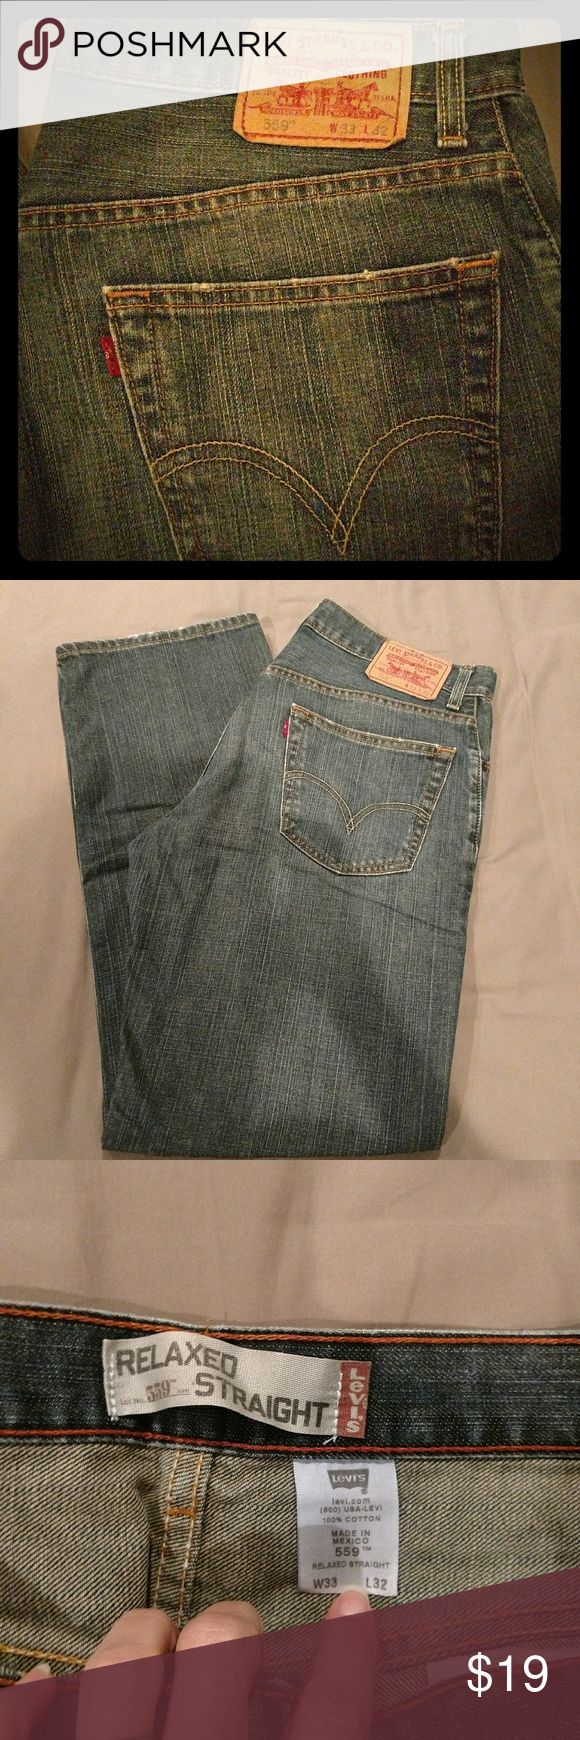 Levis 559 Ralaxed Straight 33/32 Men's Levi's 559 Relaxed Straight. I would say they are medium wash??  Excellent pre-loved condition. 33/32 Levi's Jeans Relaxed